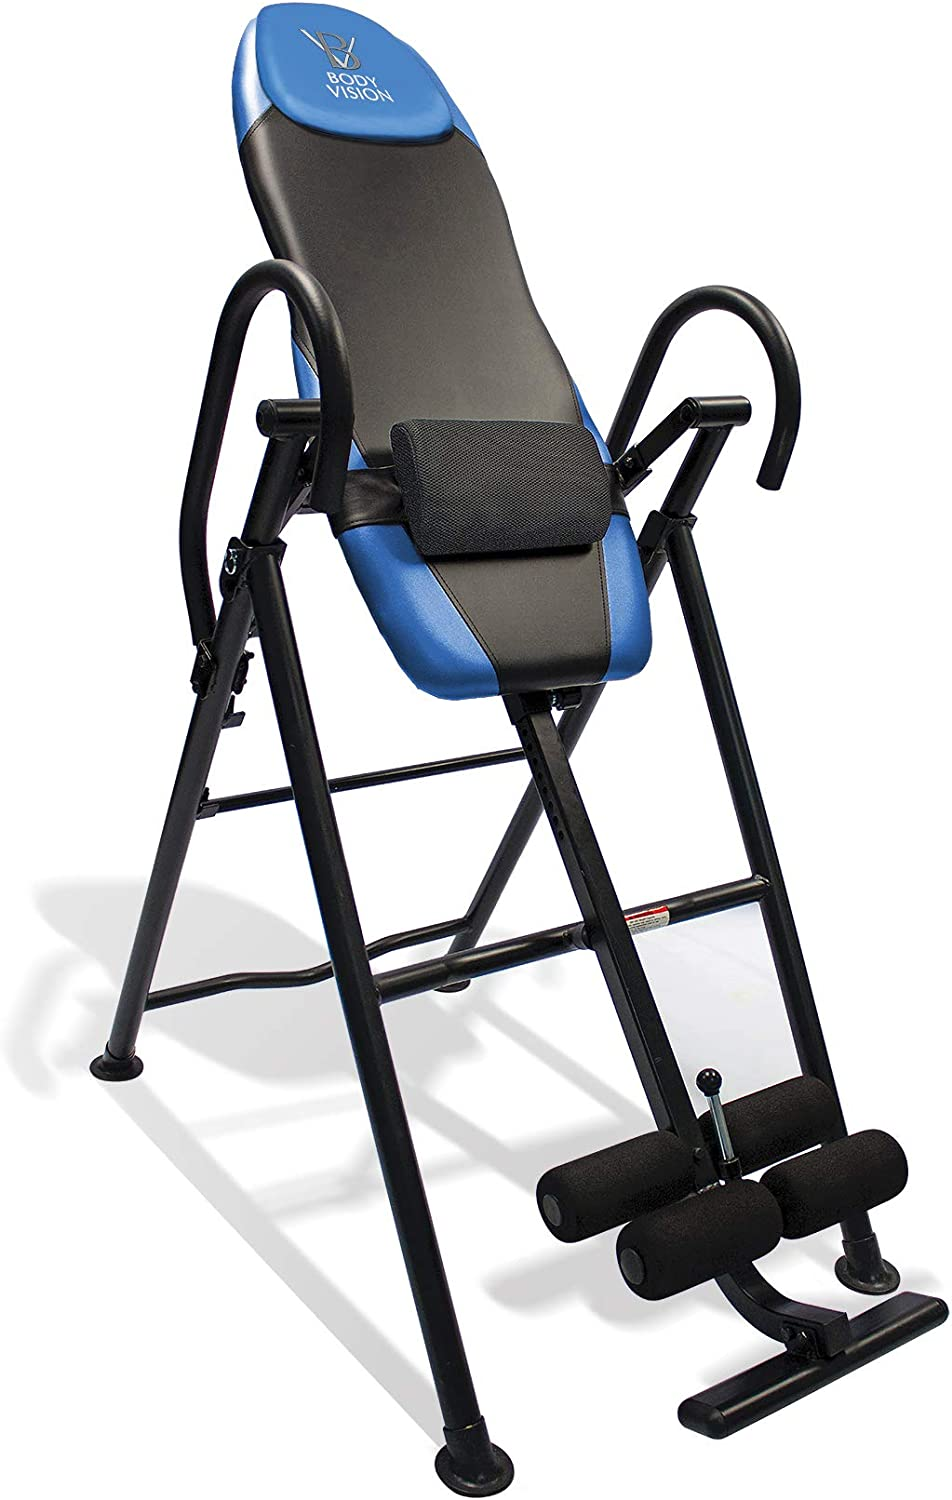 Body Vision IT9550 Deluxe Inversion Table with Adjustable Head Pillow Lumbar Support Pad, Blue – Heavy Duty up to 250 lbs